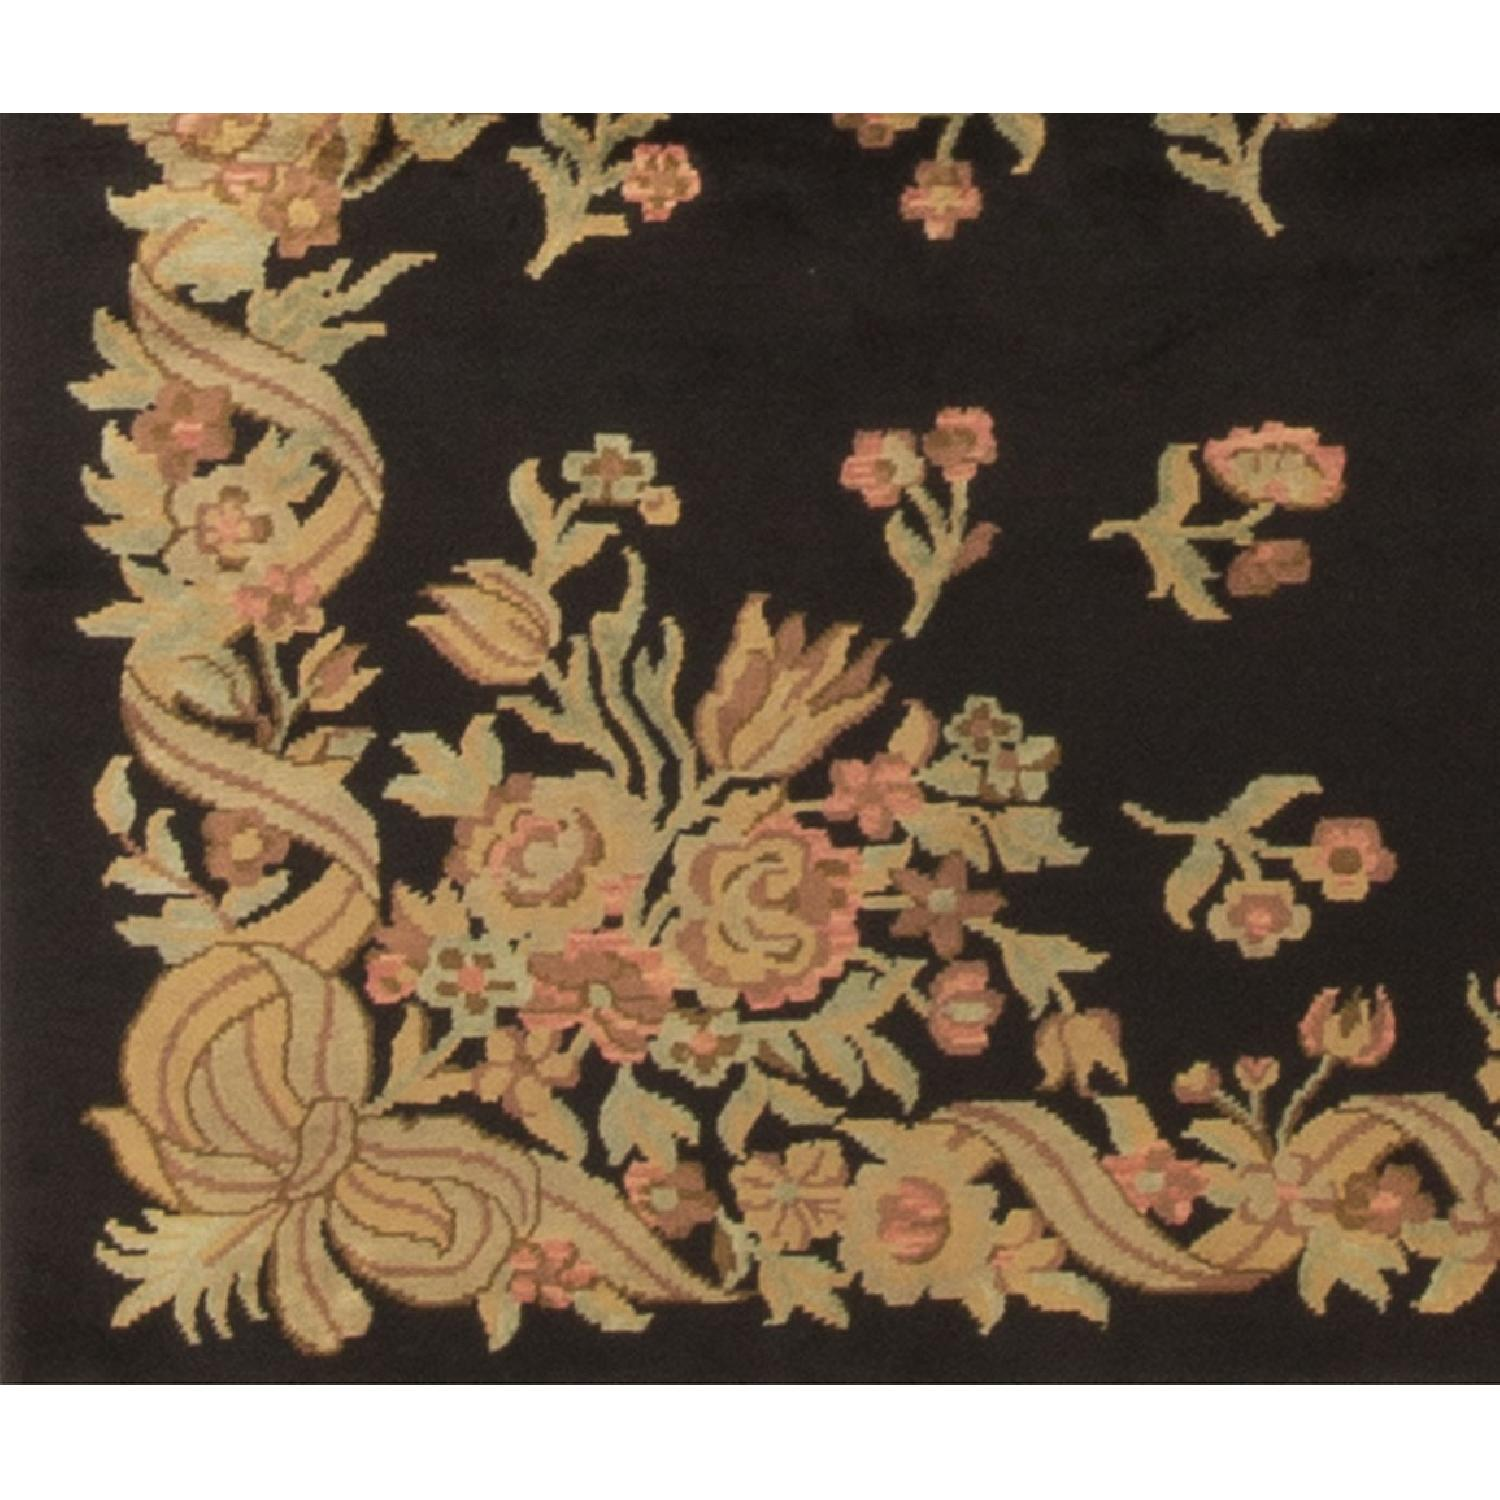 Modern Contemporary Hand Knotted Wool Rug - image-2